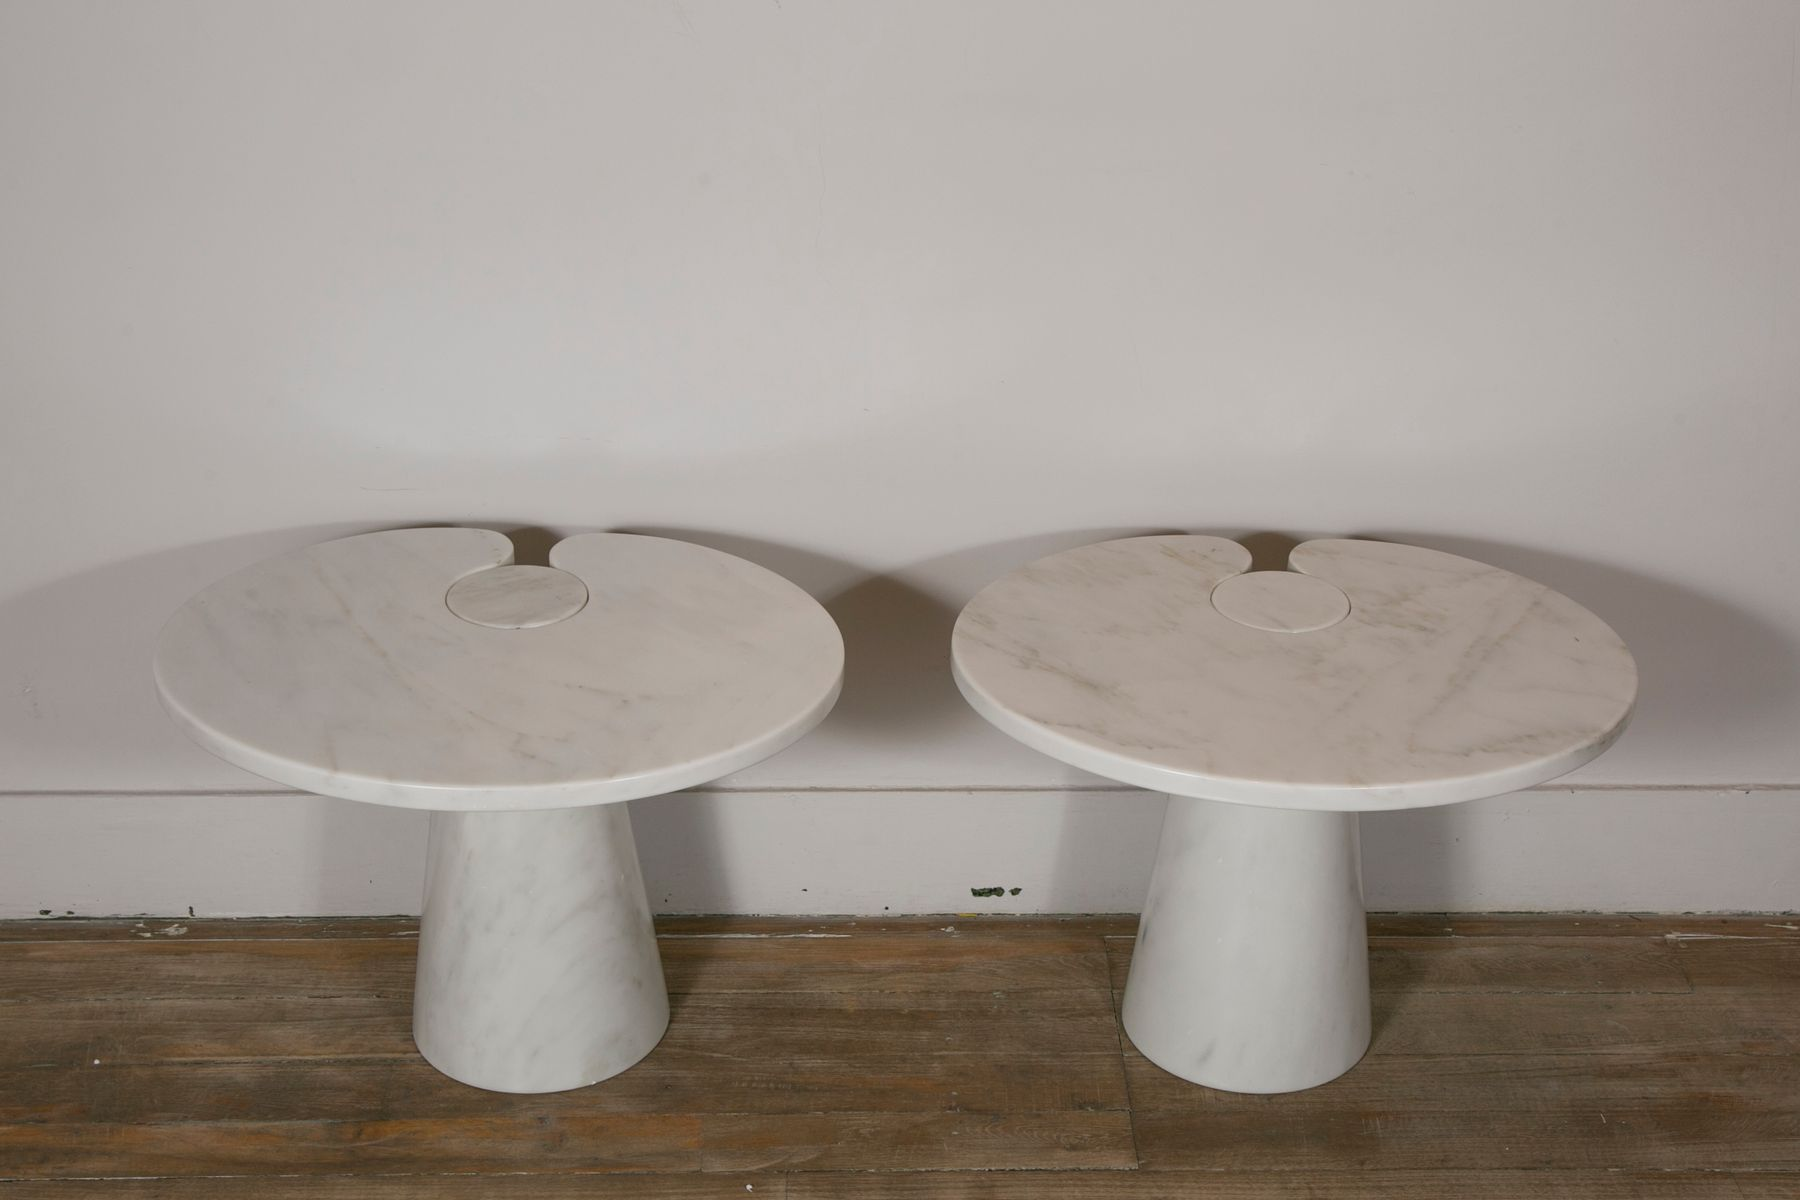 Vintage Marble Side Tables by Angelo Mangiarotti for Skipper Set